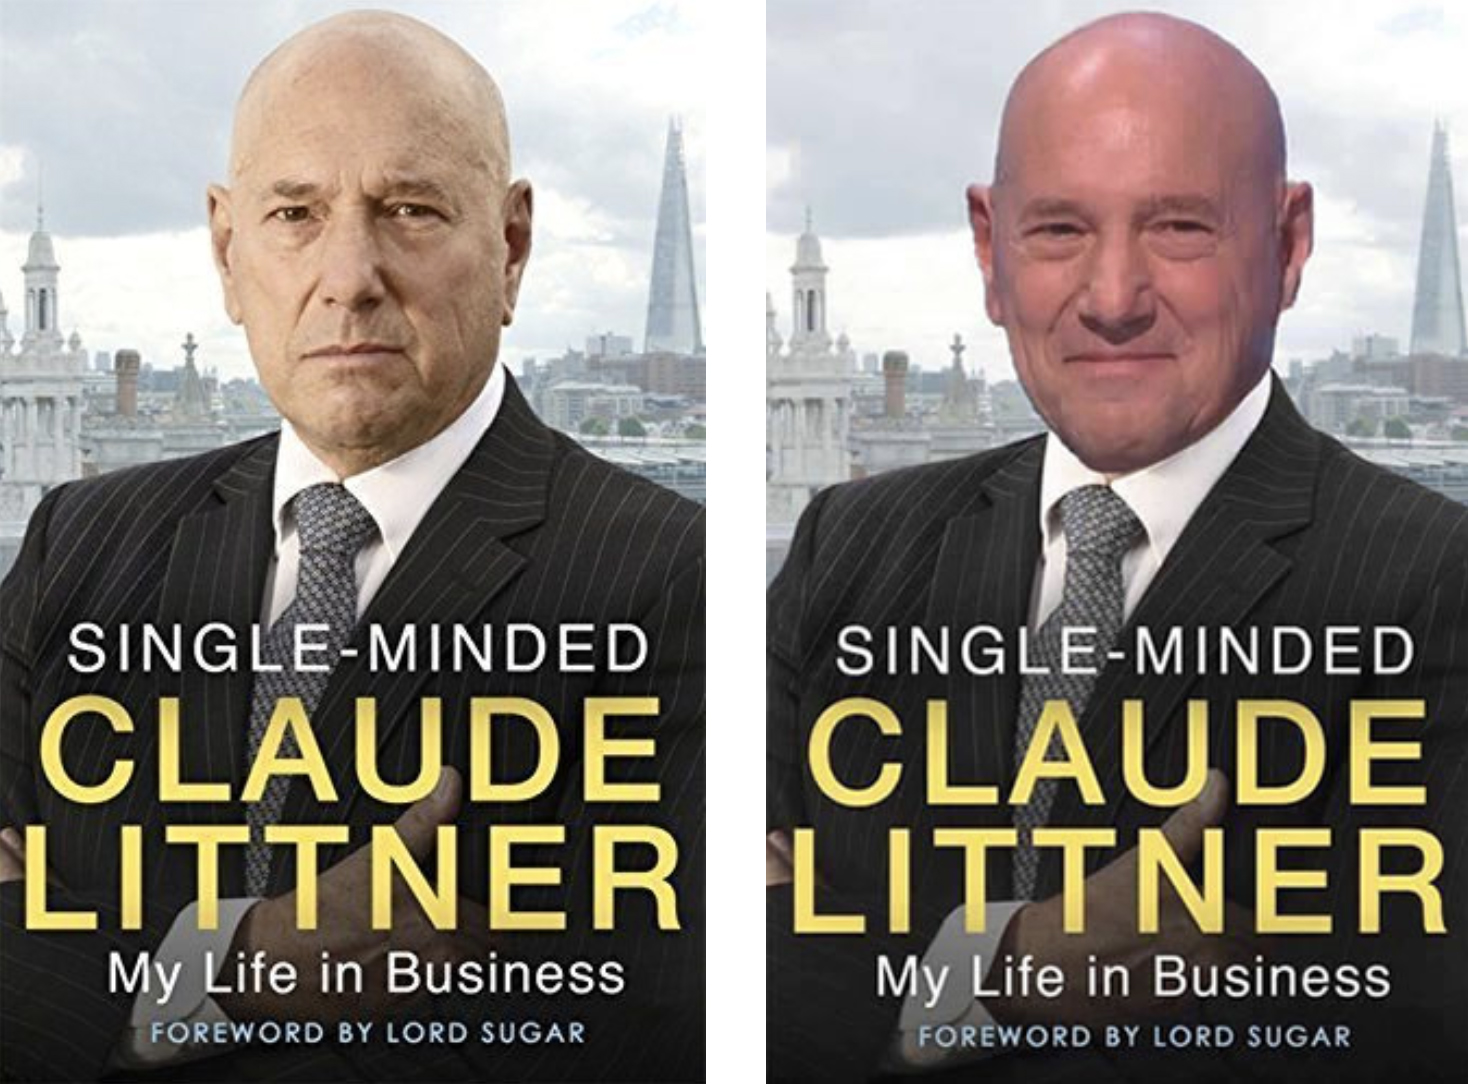 Cracking a smile with Claude Littner